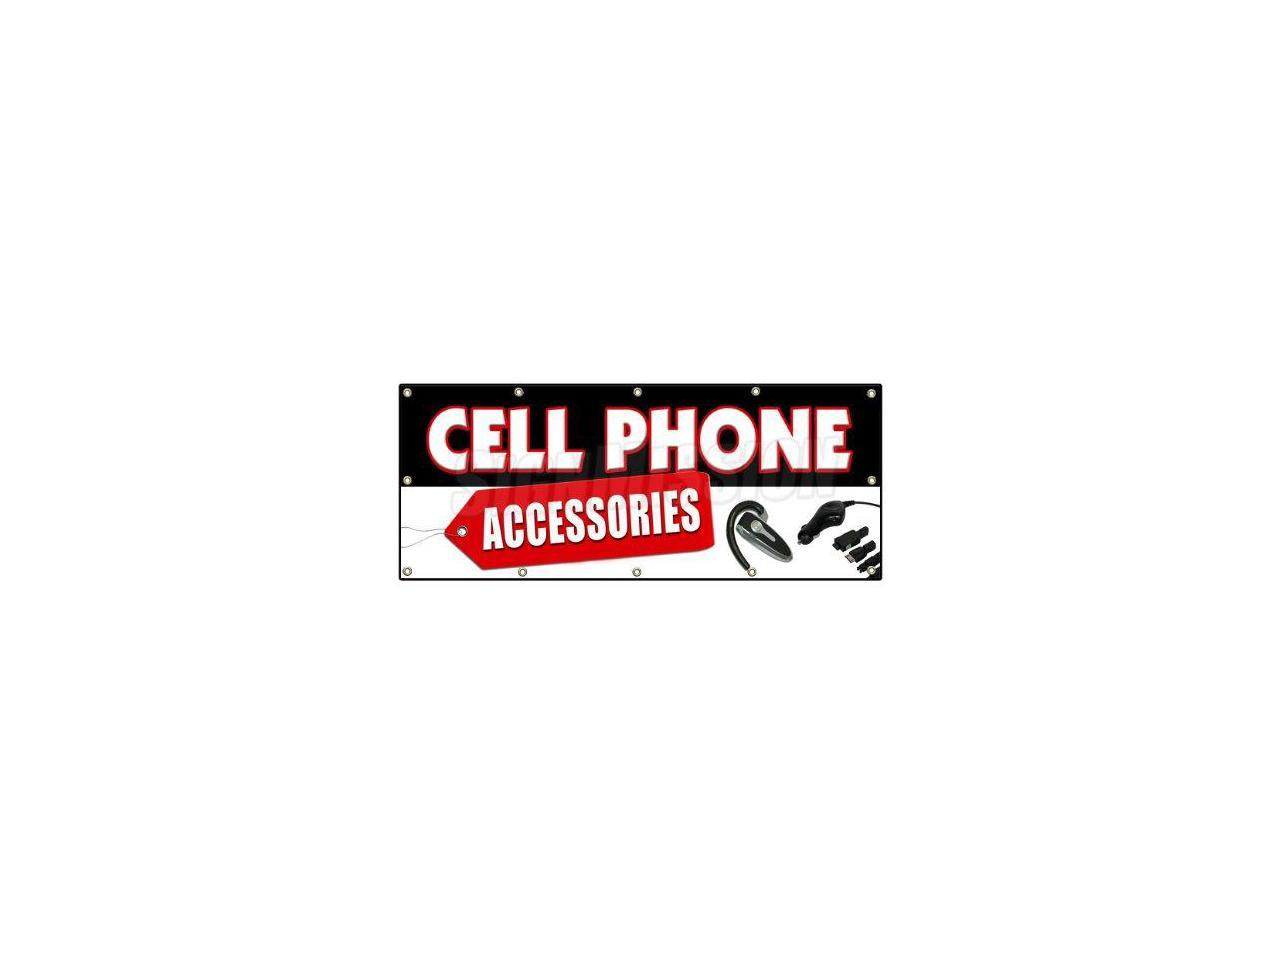 CELL PHONES AND ACCESSORIES BANNER SIGN burner lg samsung no contract